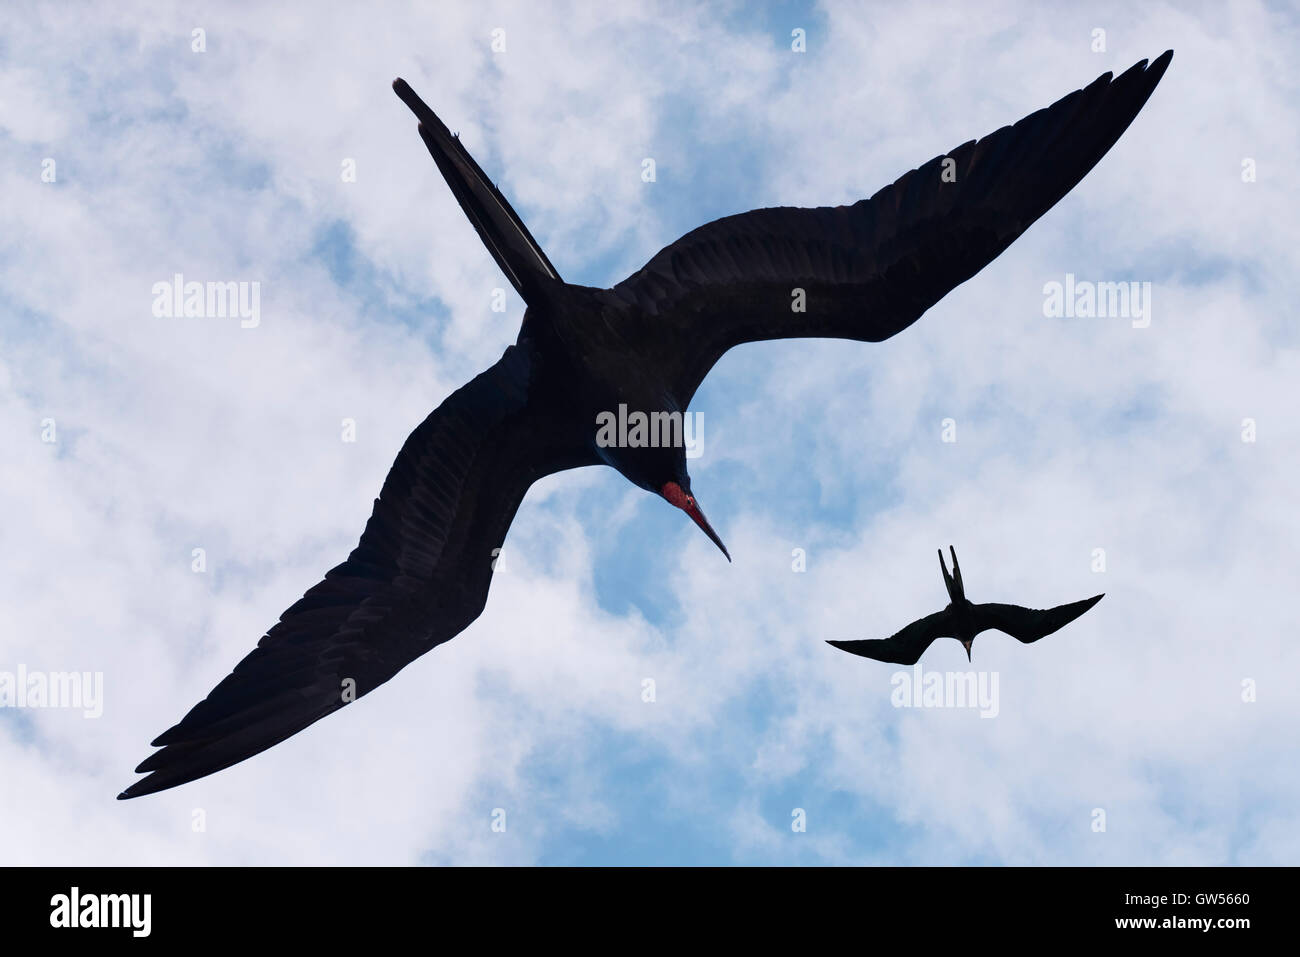 Two Magnificent Frigate Birds (Fregata magnificens) soar in a blue summer sky - Stock Image